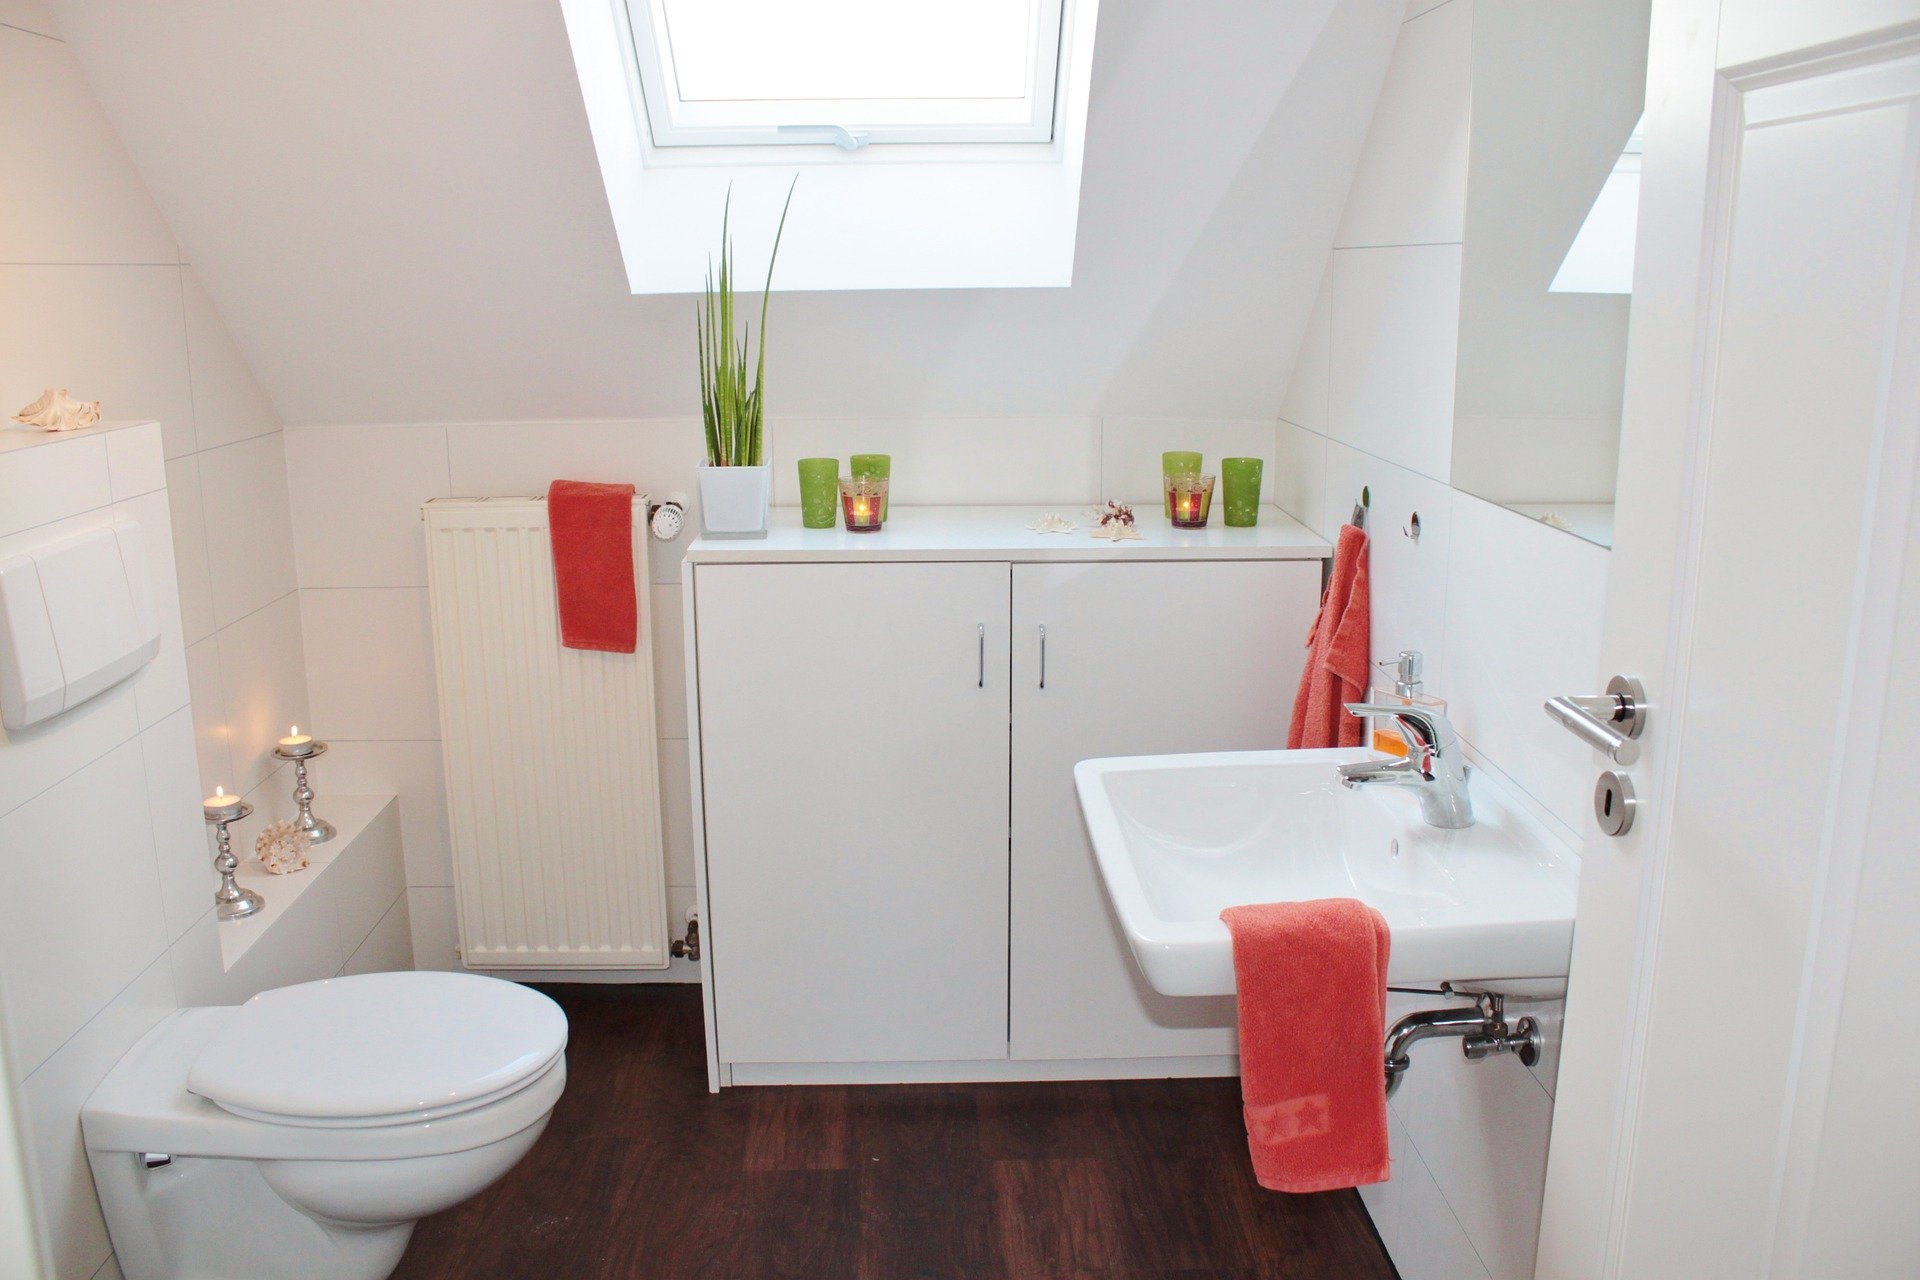 Tips on How to Spruce Up Your Small Bathroom 1